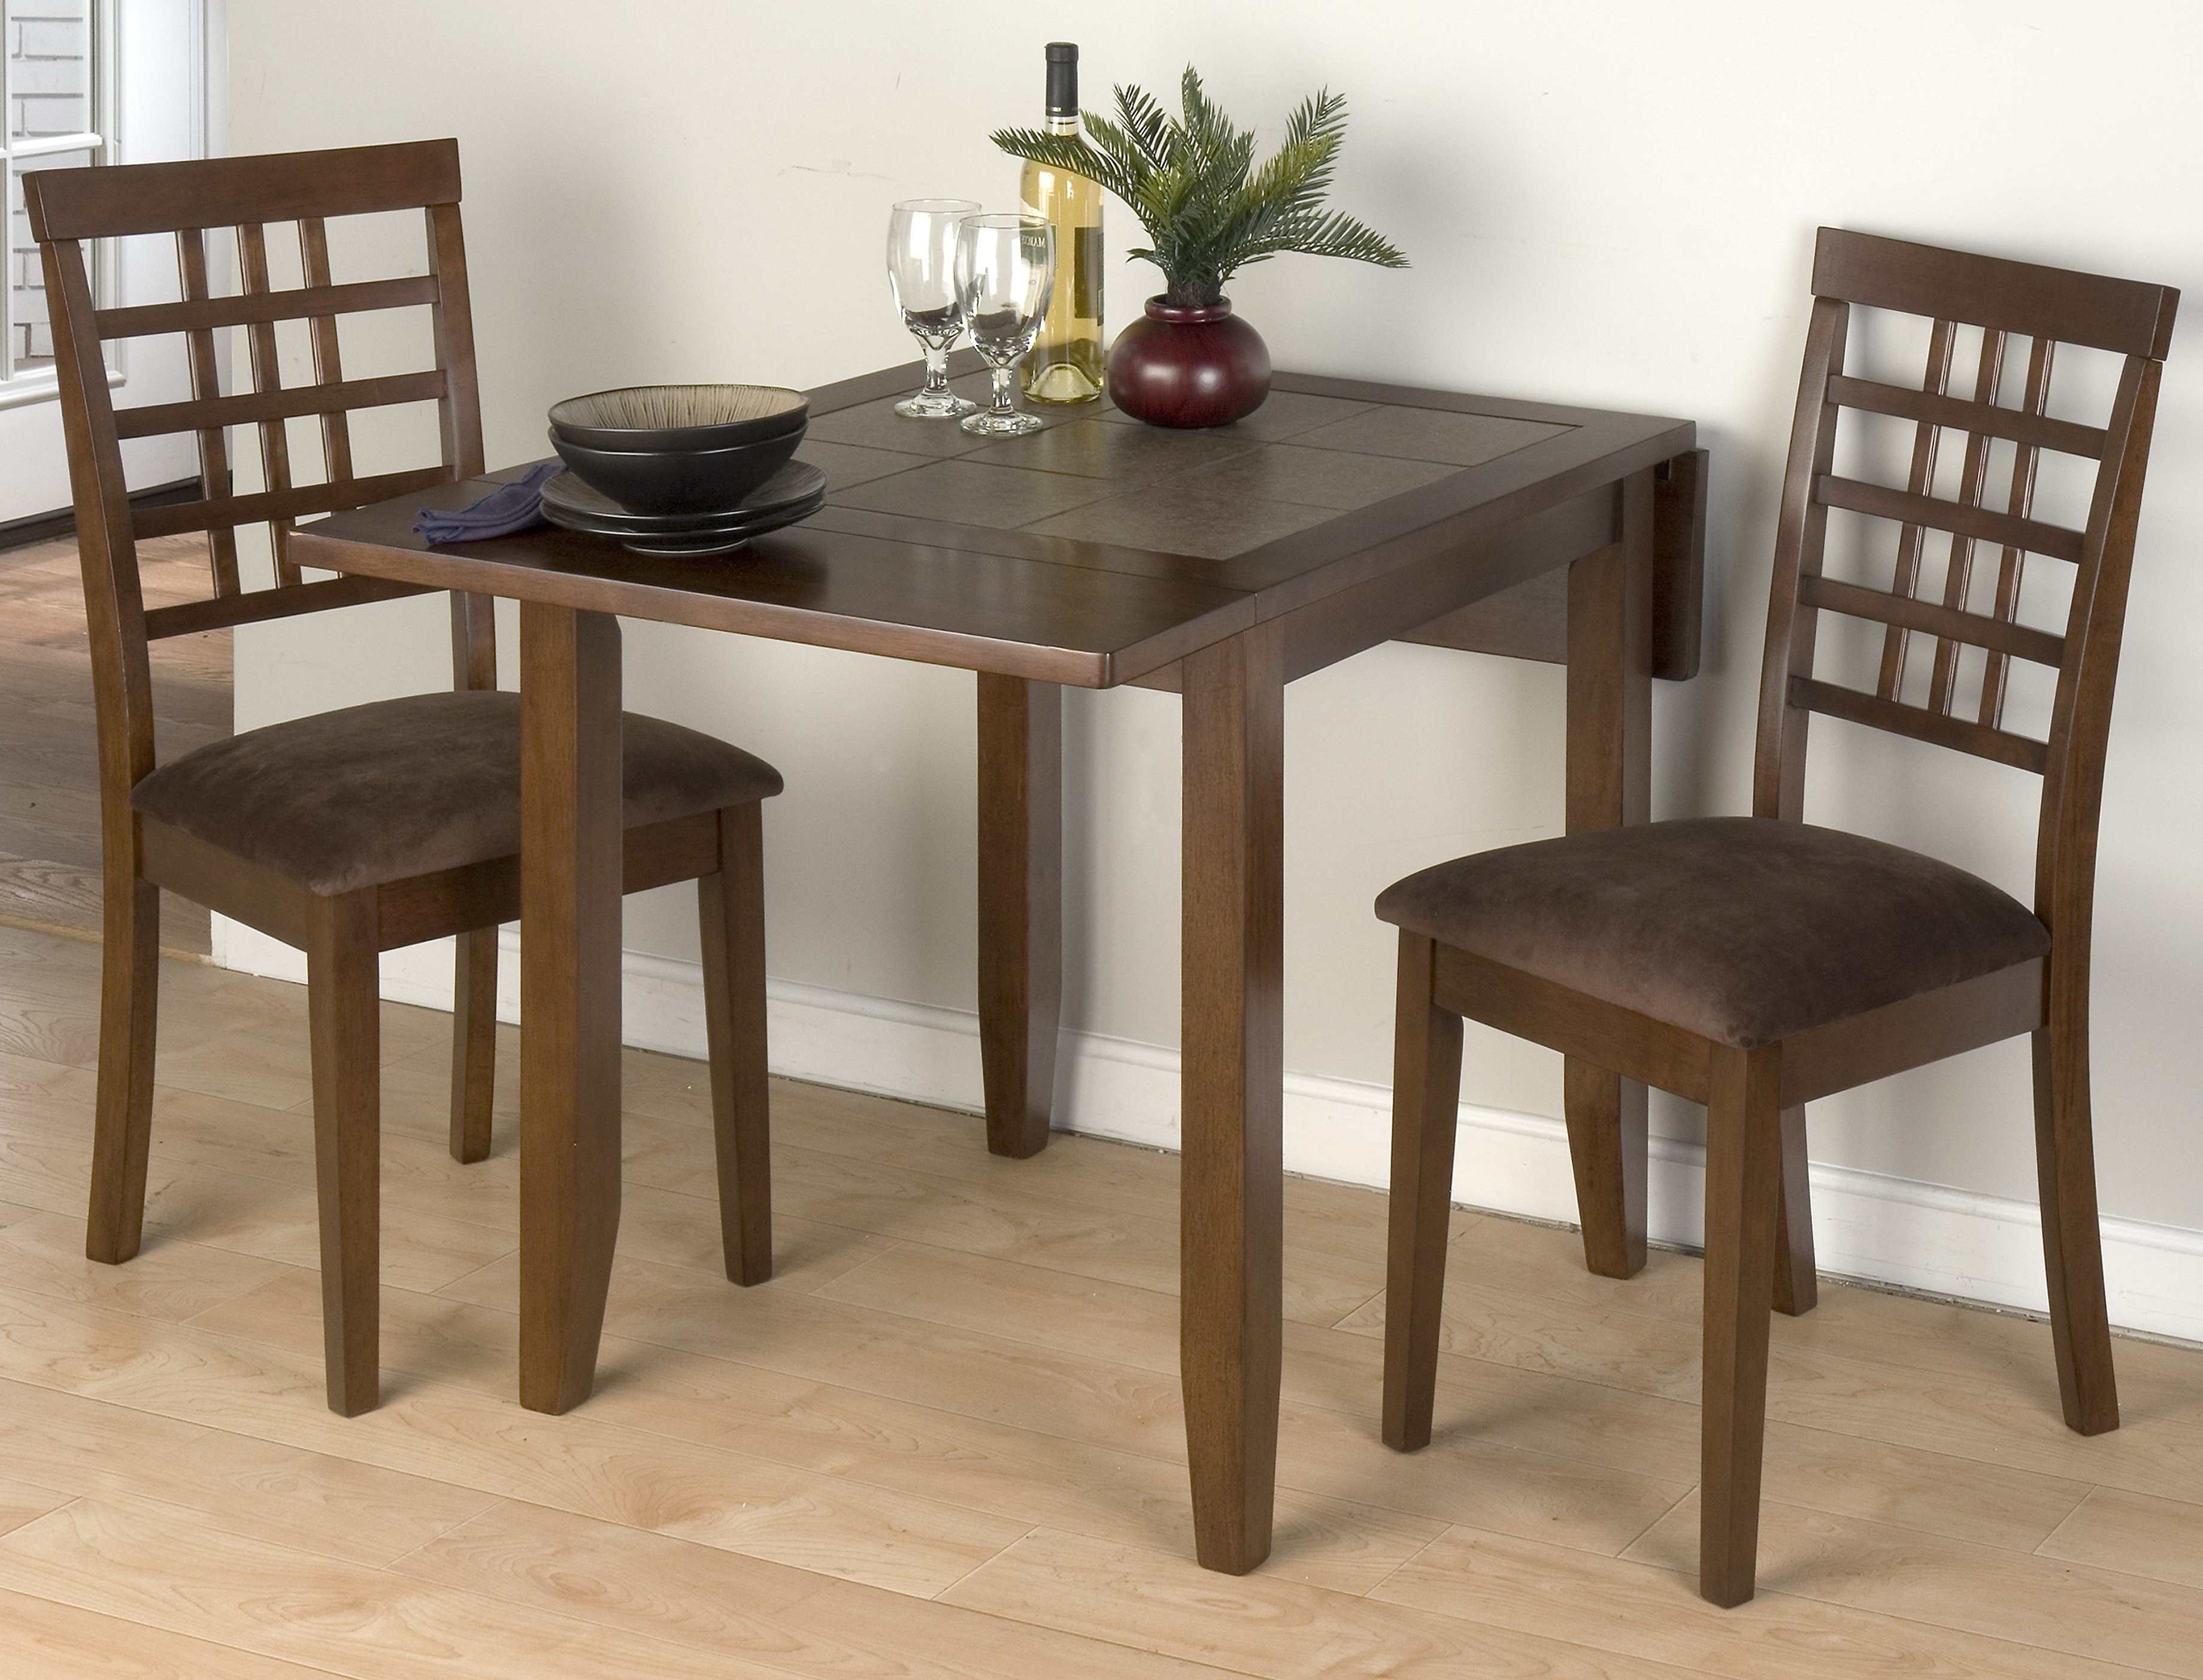 Extendable Dining Tables For Small Spaces Awesome Wood And Metal in Current Extendable Dining Tables And Chairs